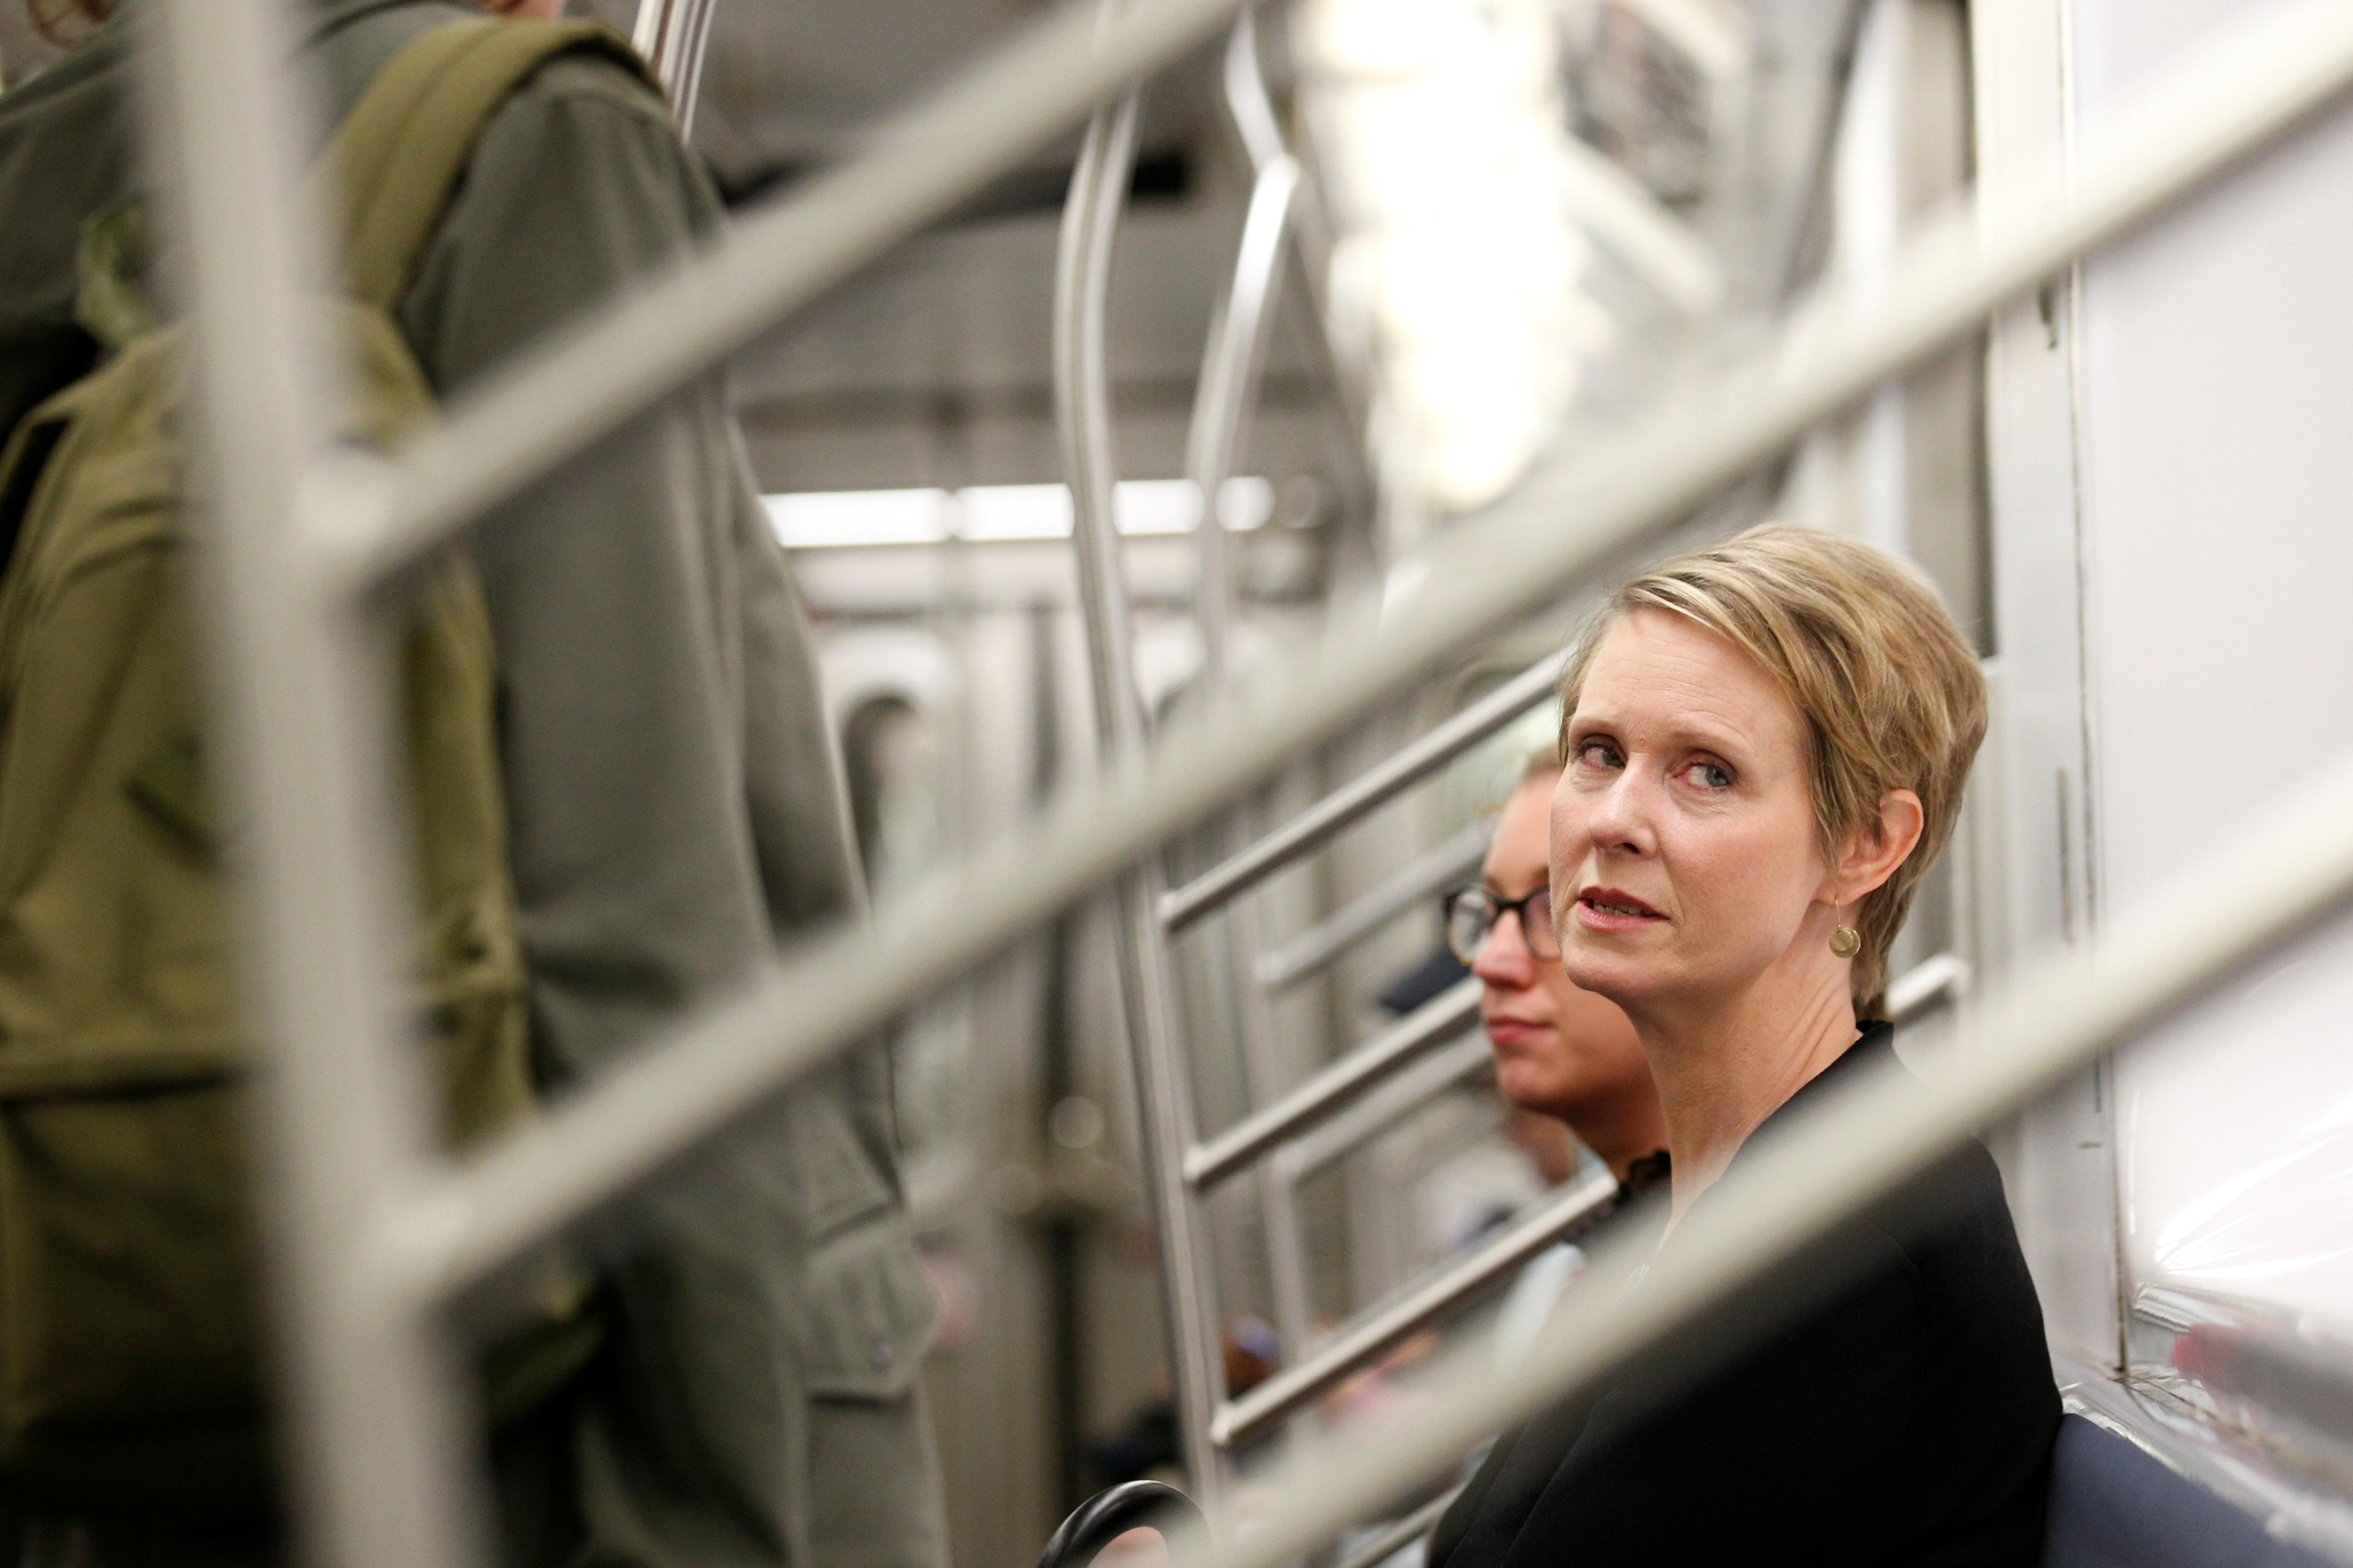 America's largest city is facing a monumental subway crisis